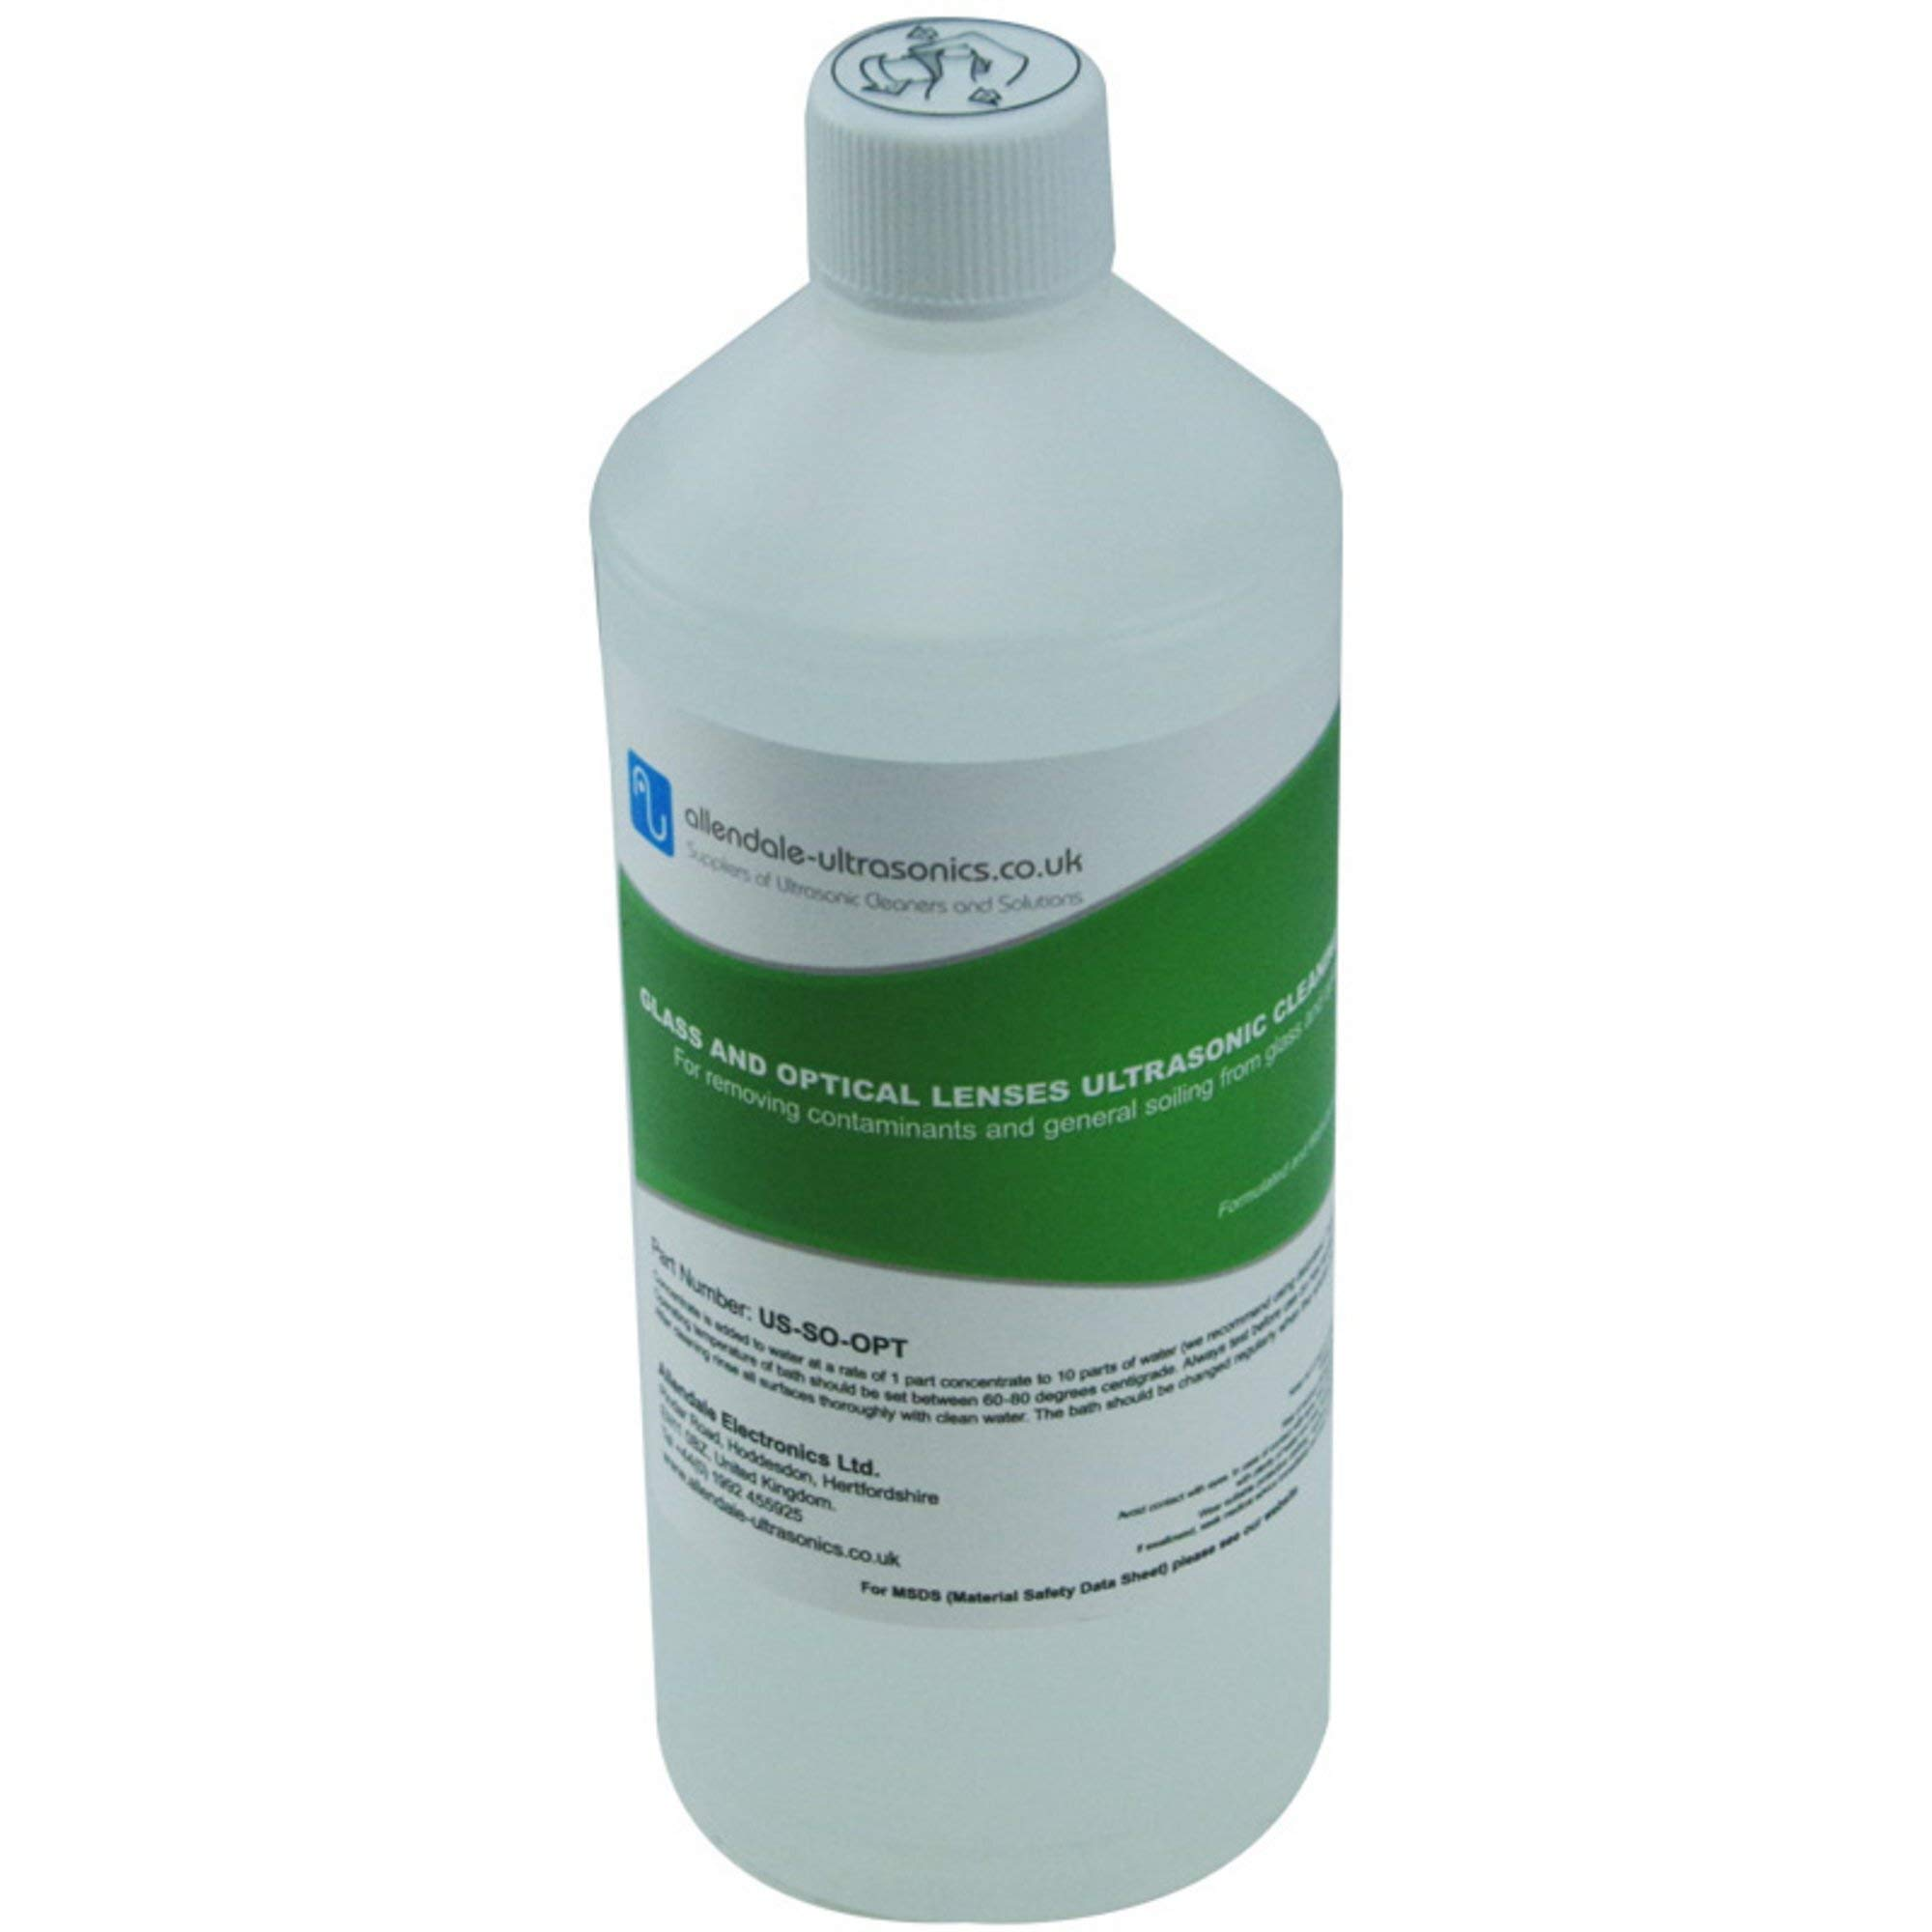 Glass and Optical Lenses Ultrasonic Cleaner Solution - 1 Litre Cleaning Fluid by Allendale Ultrasonics